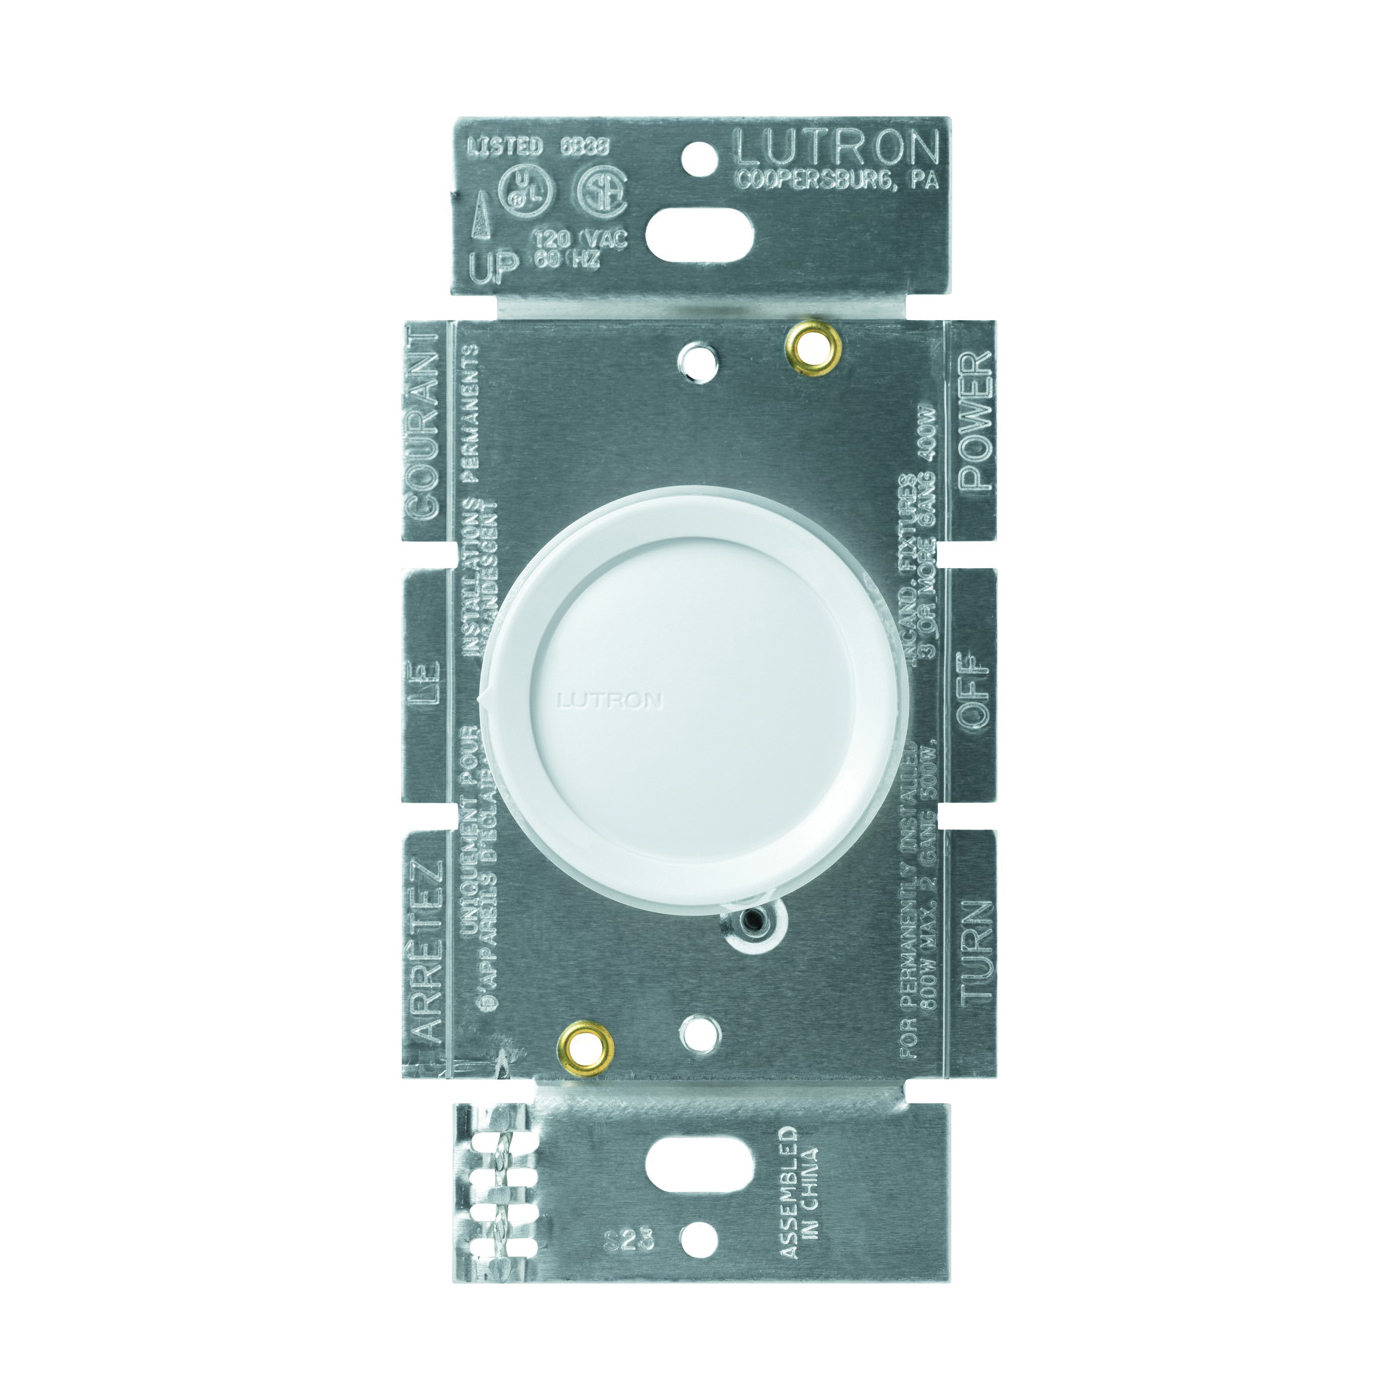 Picture of Lutron D-603PGH-DK Rotary Dimmer, 5 A, 120 V, 600 W, Halogen, Incandescent Lamp, 3-Way, Ivory/White